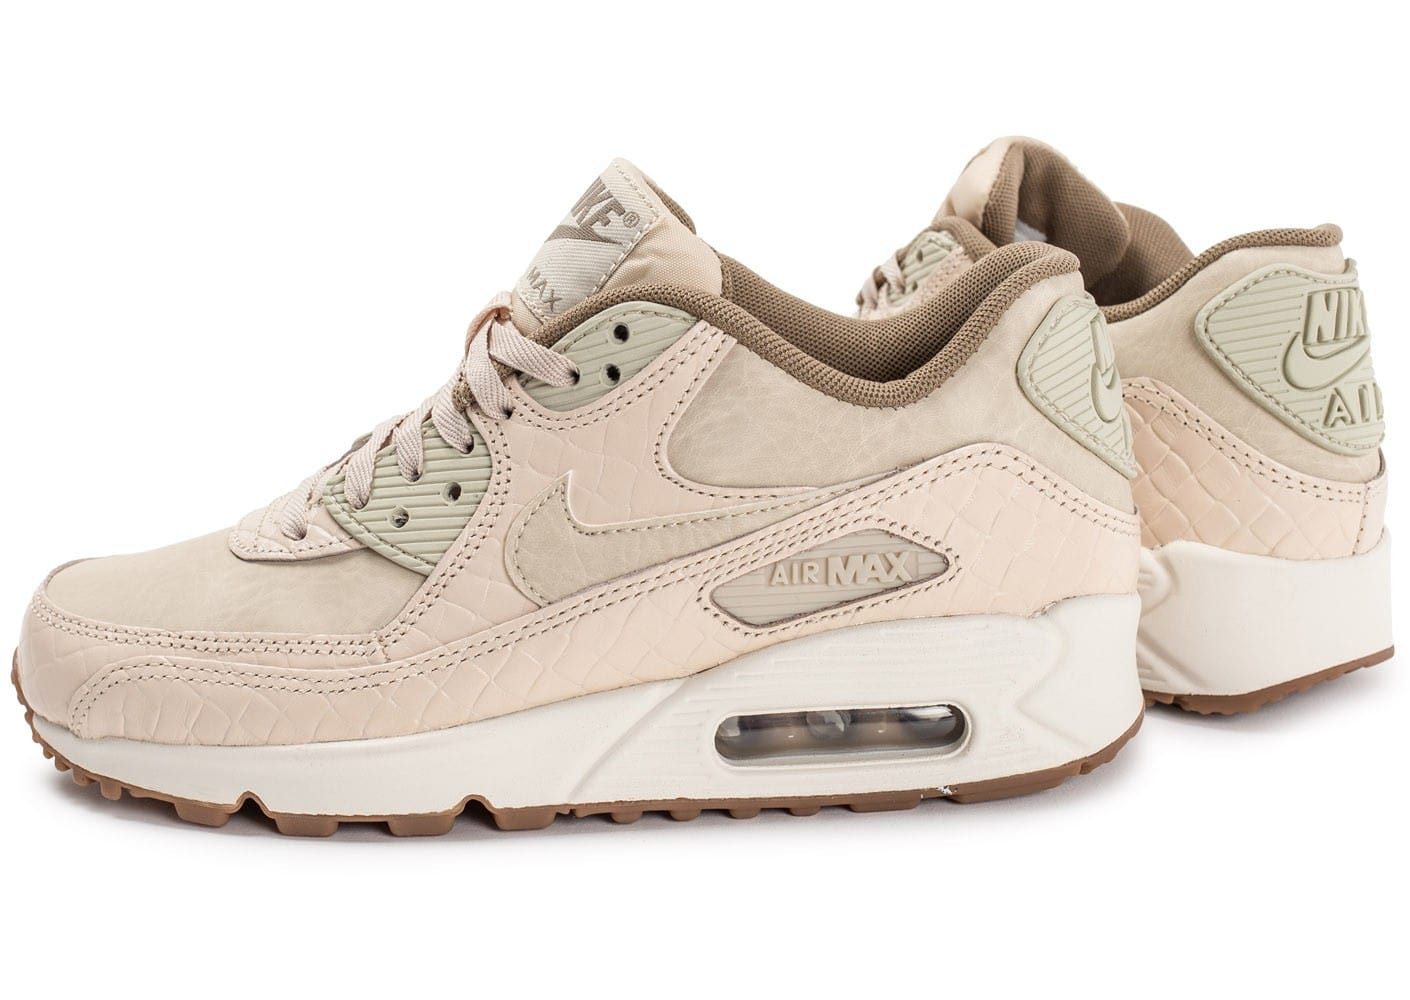 bien connu chasures homme nike air max 7WR03